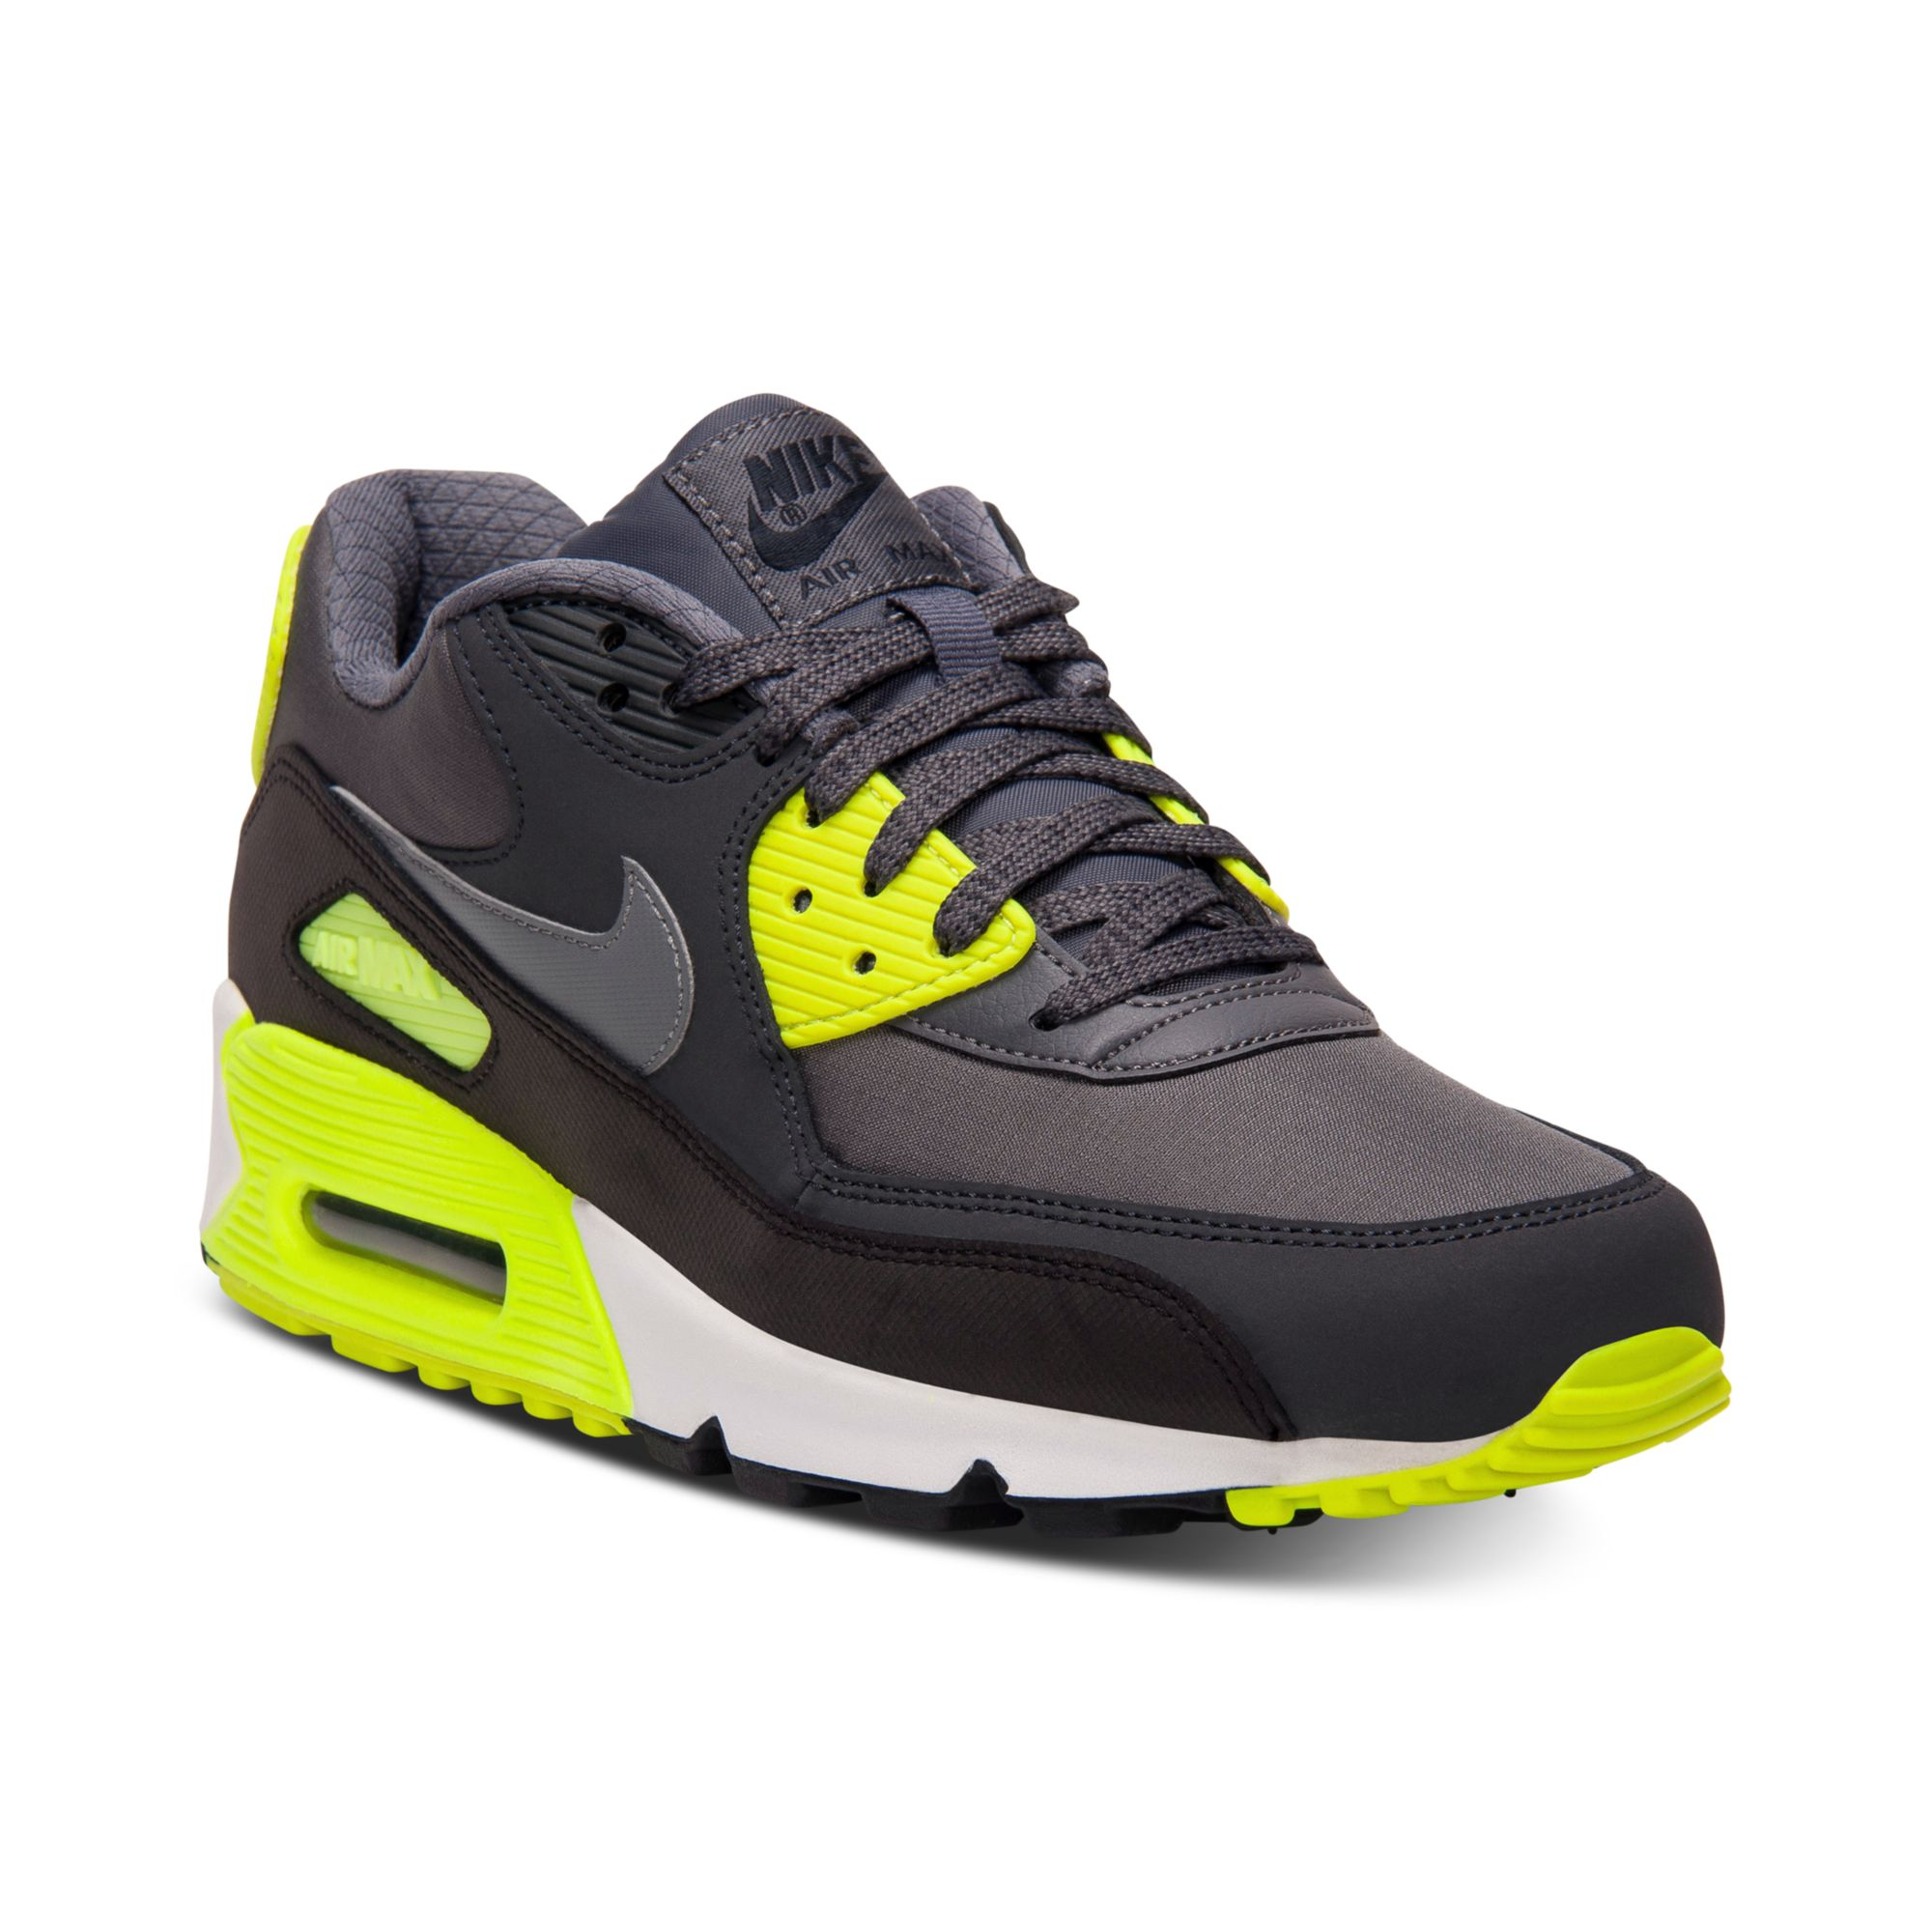 496fe32f416c Gallery. Previously sold at  Macy s · Men s Running Sneakers Men s Air Max  90 ...